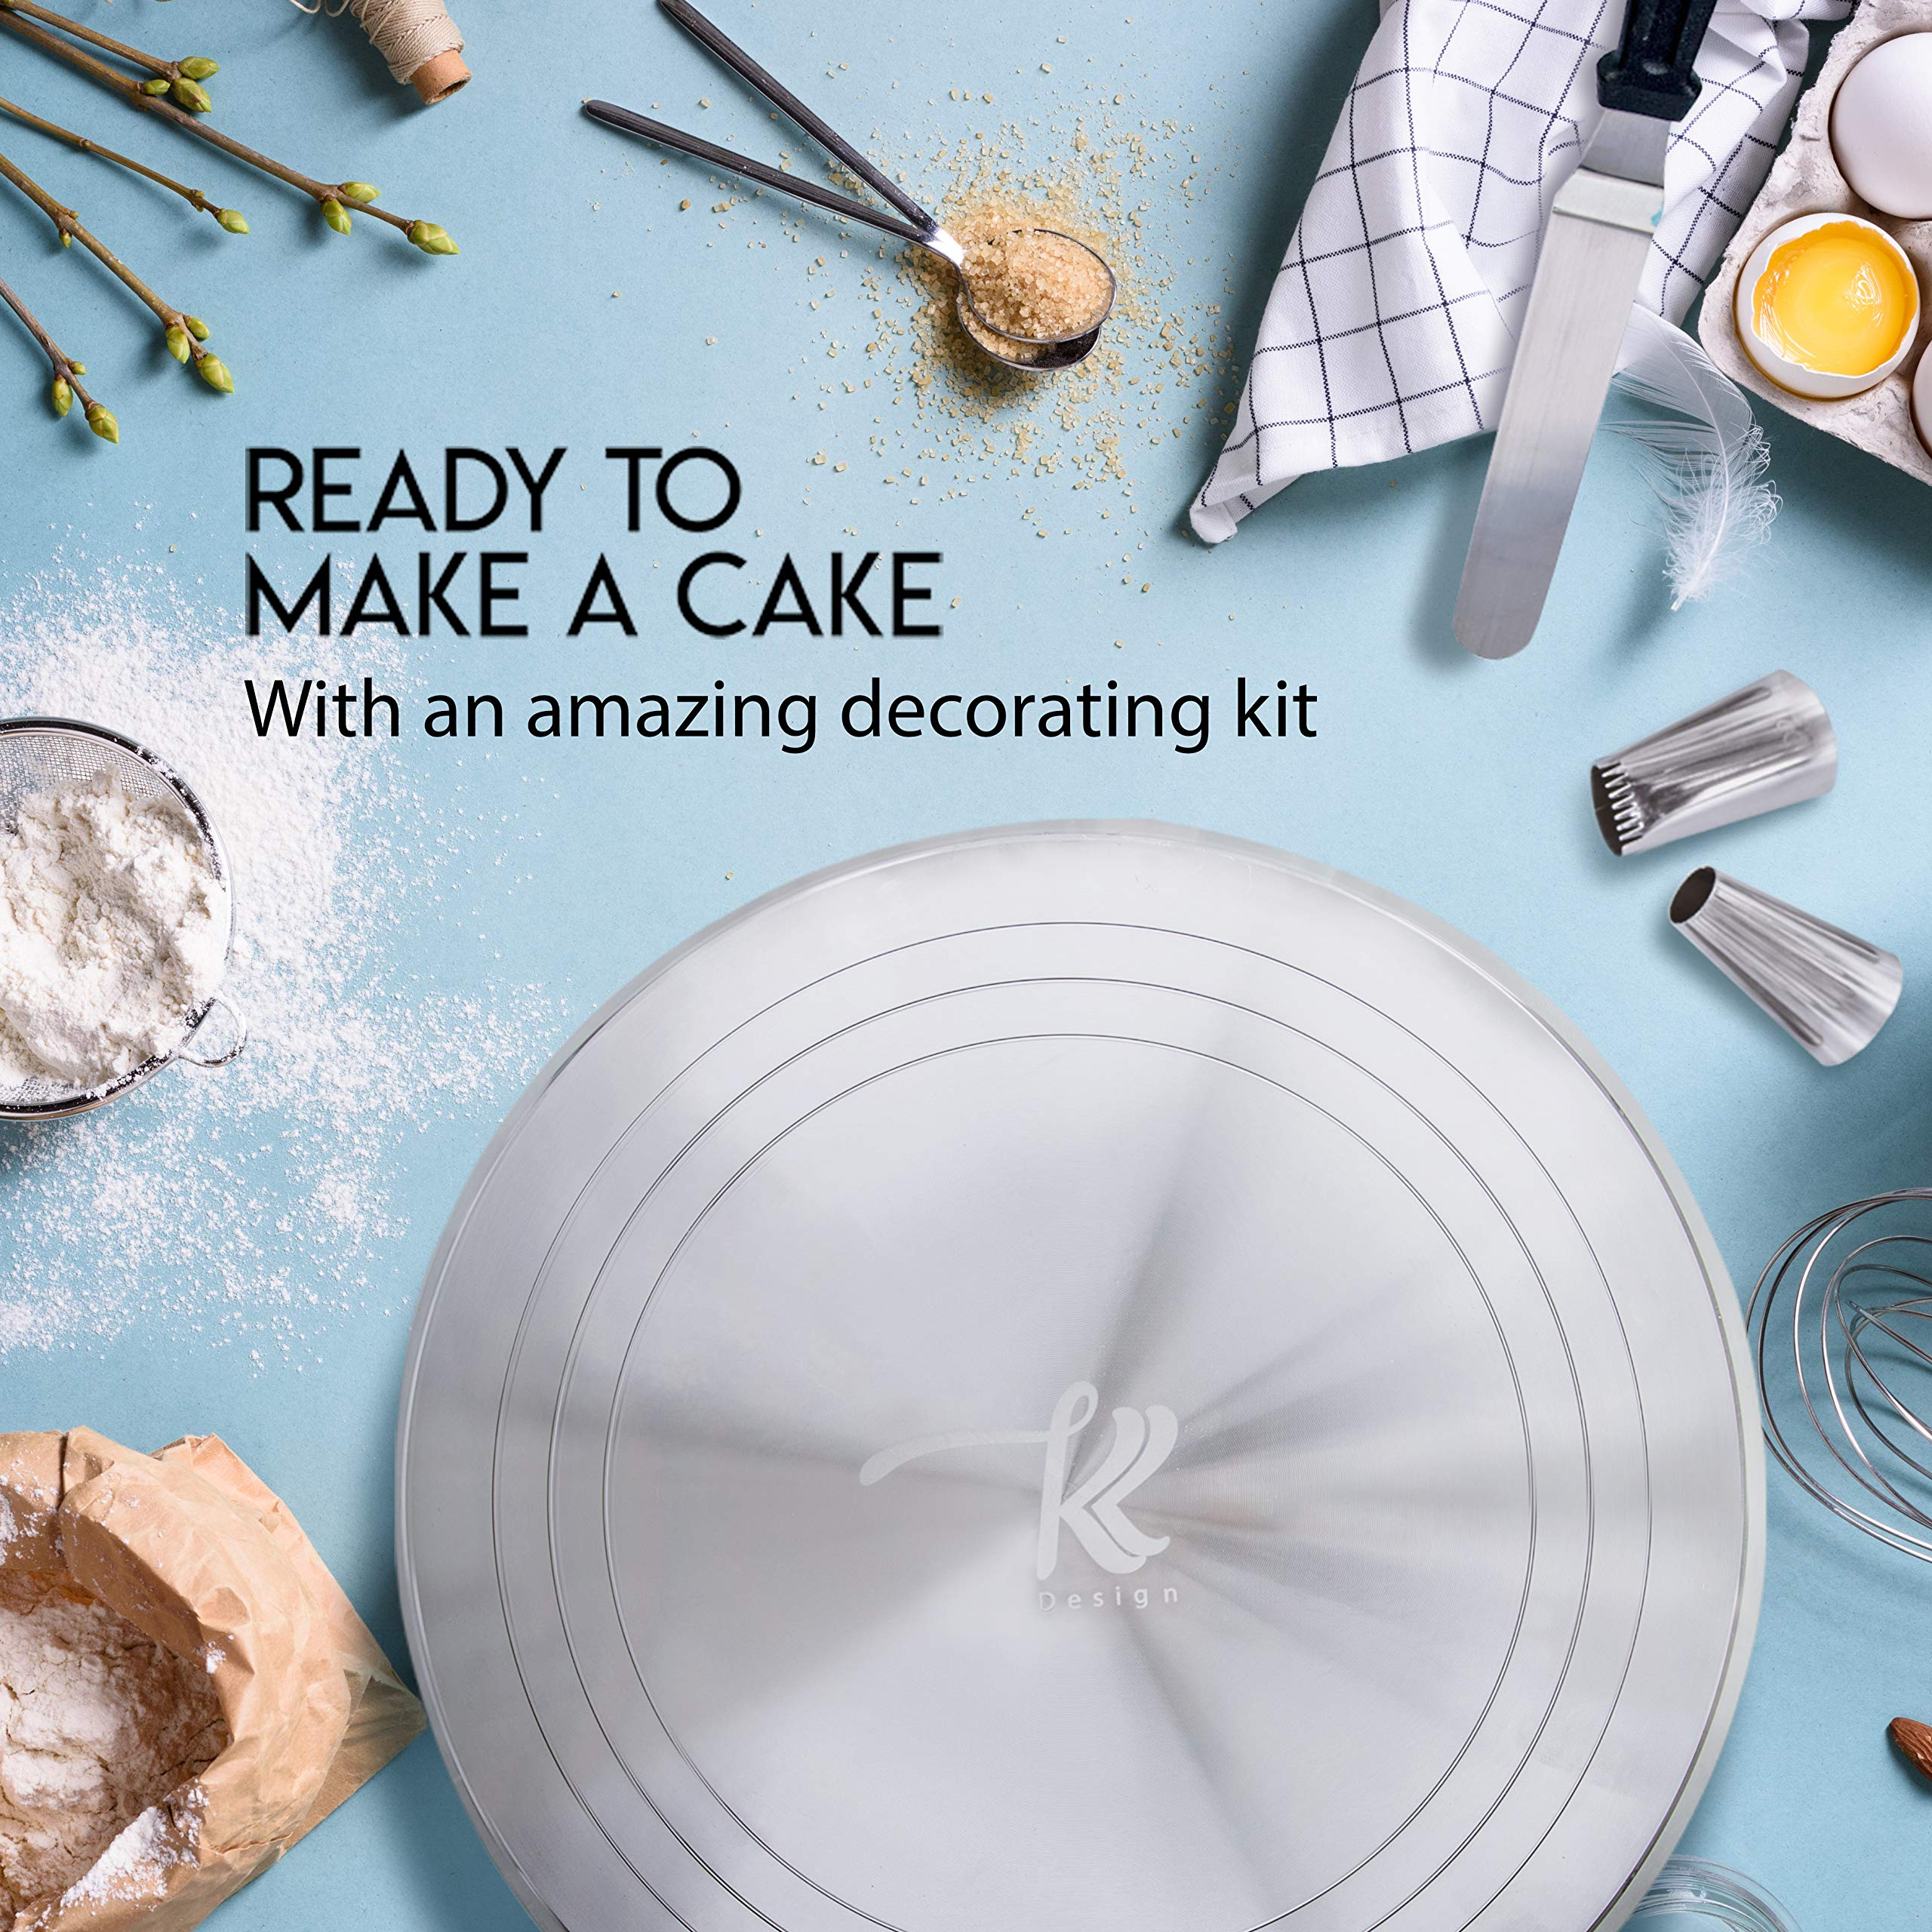 186 Pcs Cake Decorating Supplies Kit,Aluminium Rotating Turntable Stand,Frosting Piping Tips,100 Disposable Bags,Couplers,Scrapers,Spatulas,Cutter,Smoother,Flower Nails,Lifter,Baking Tools Set by K&K Design (Image #9)